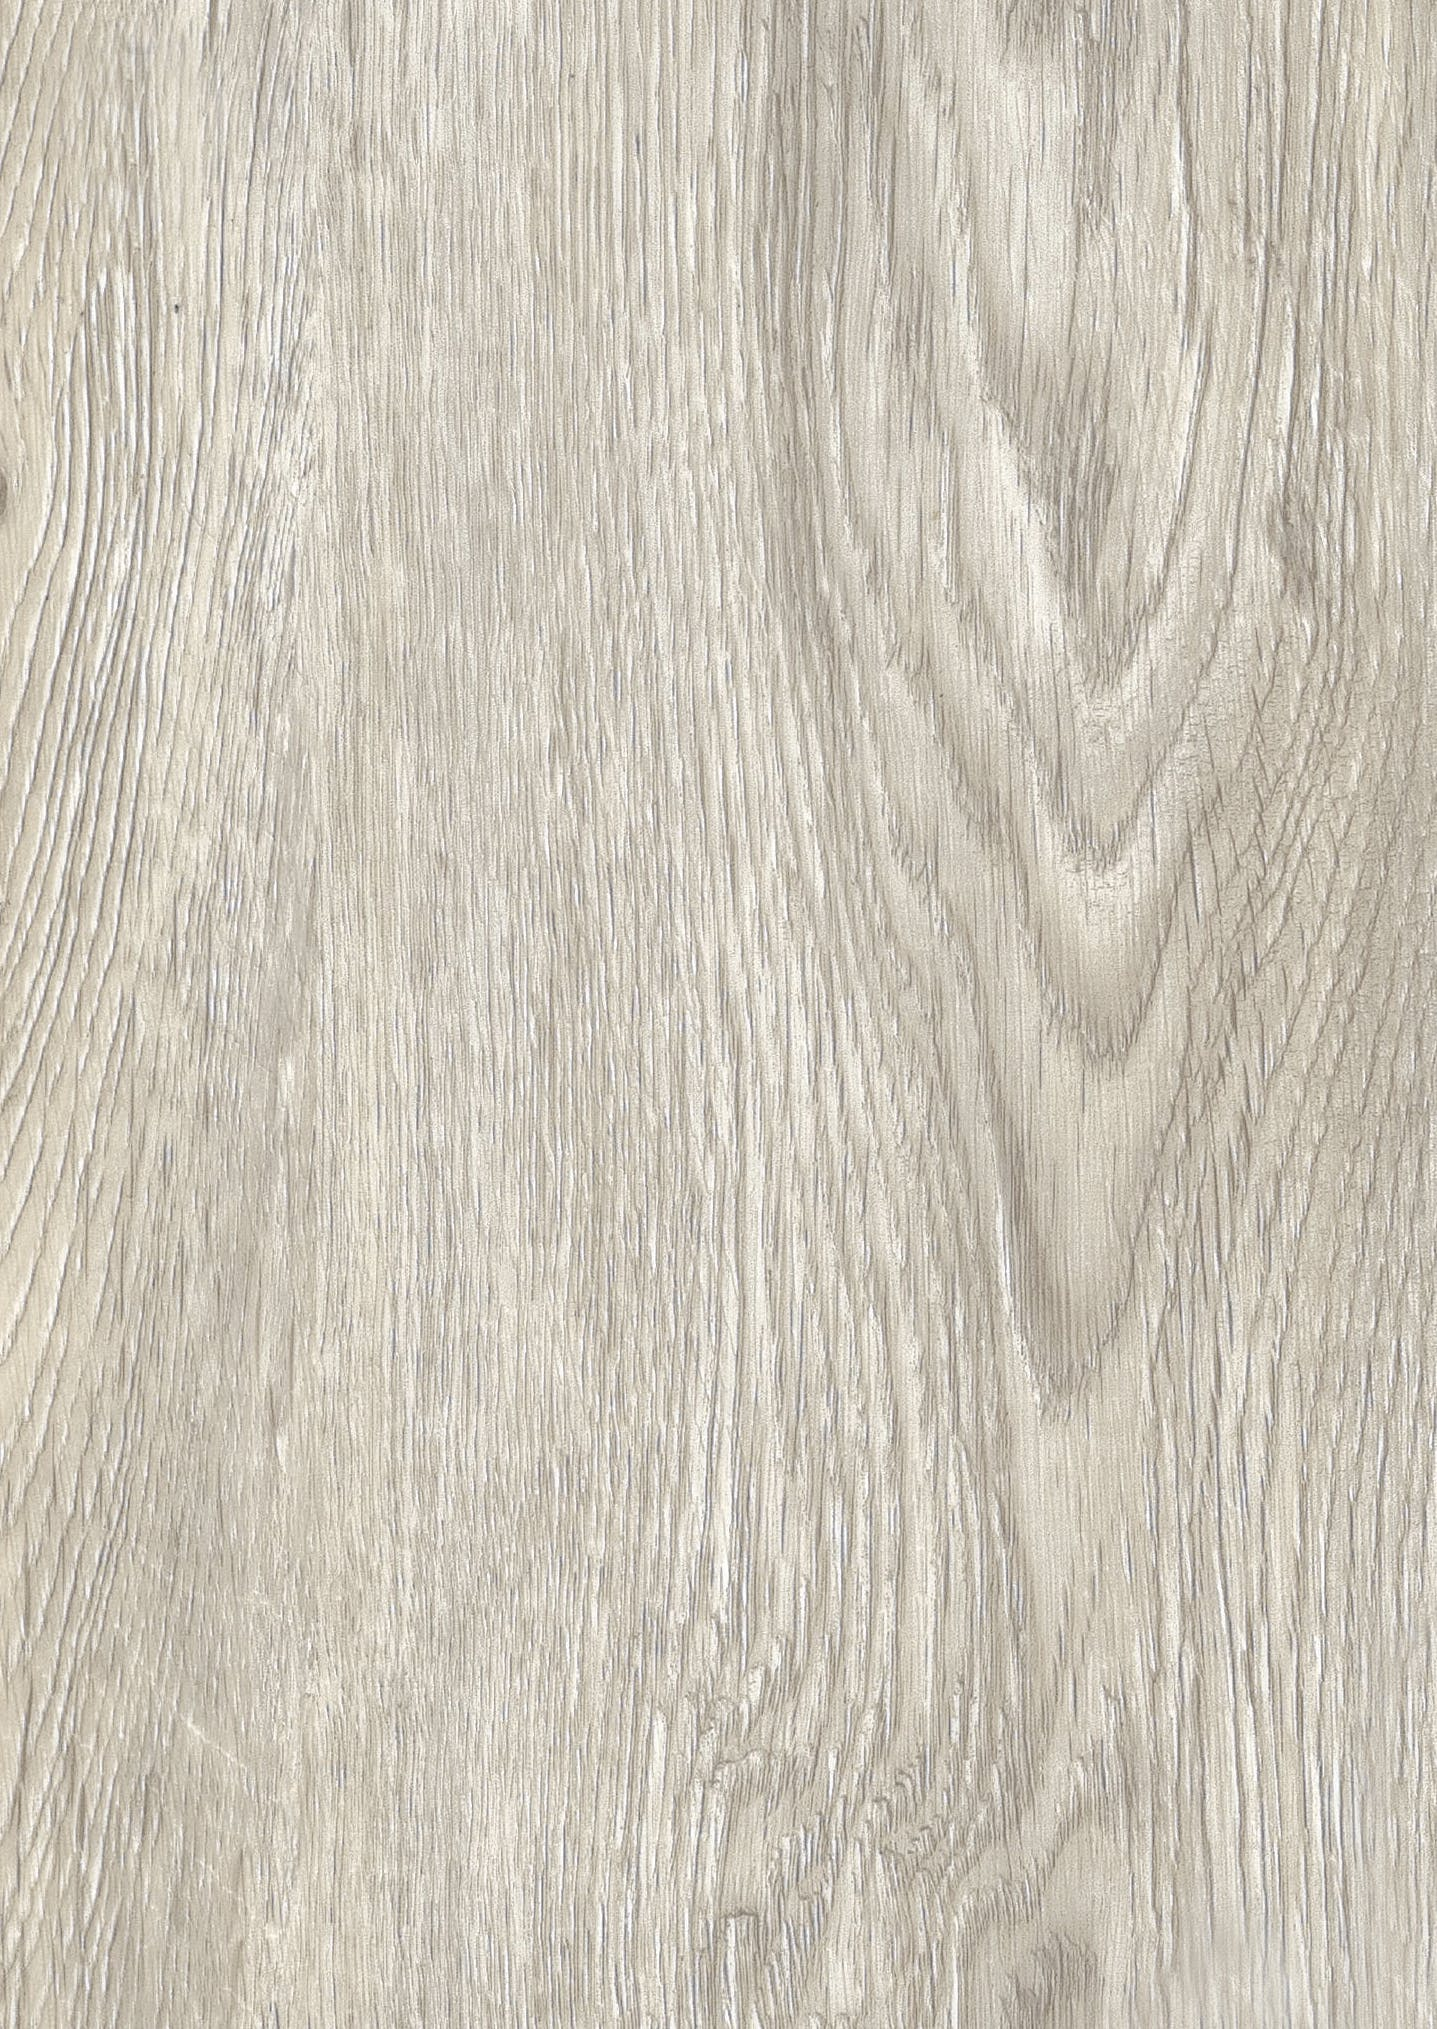 Valencia Chantilly Oak Vinyl Flooring Click Plank - 1.75 sqm / Box